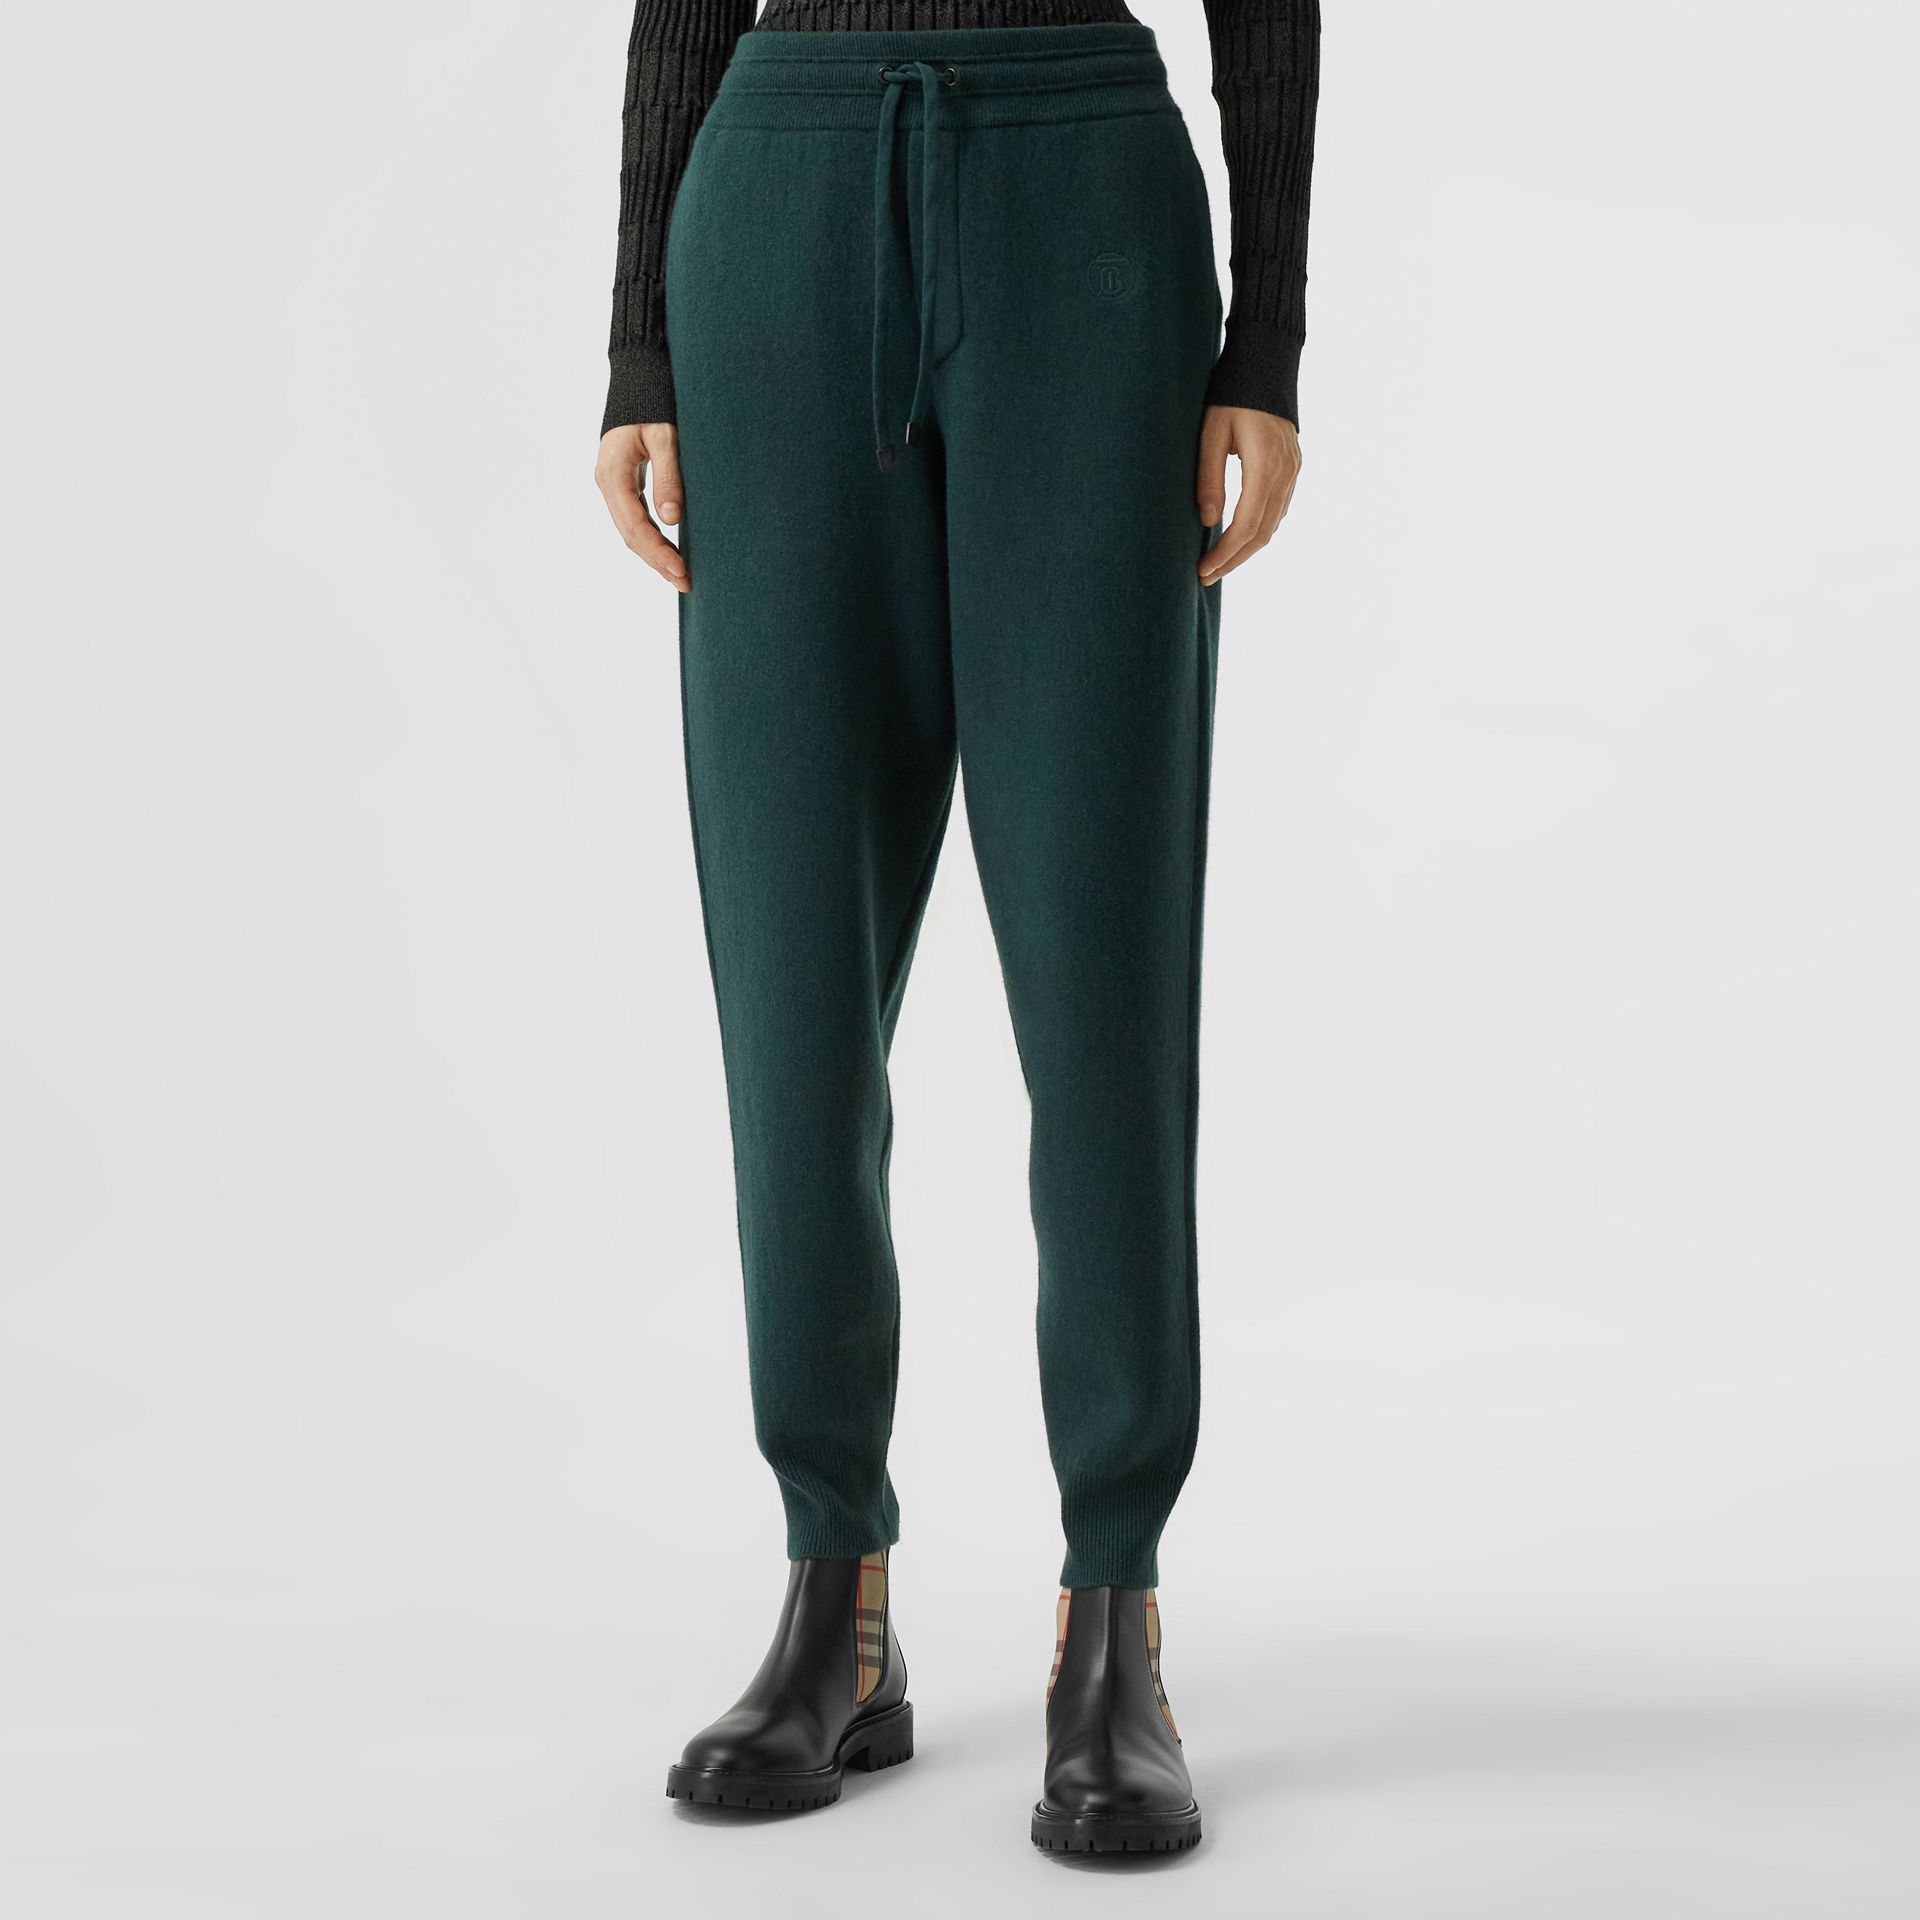 Monogram Motif Cashmere Blend Jogging Pants in Bottle Green - Women | Burberry - gallery image 4